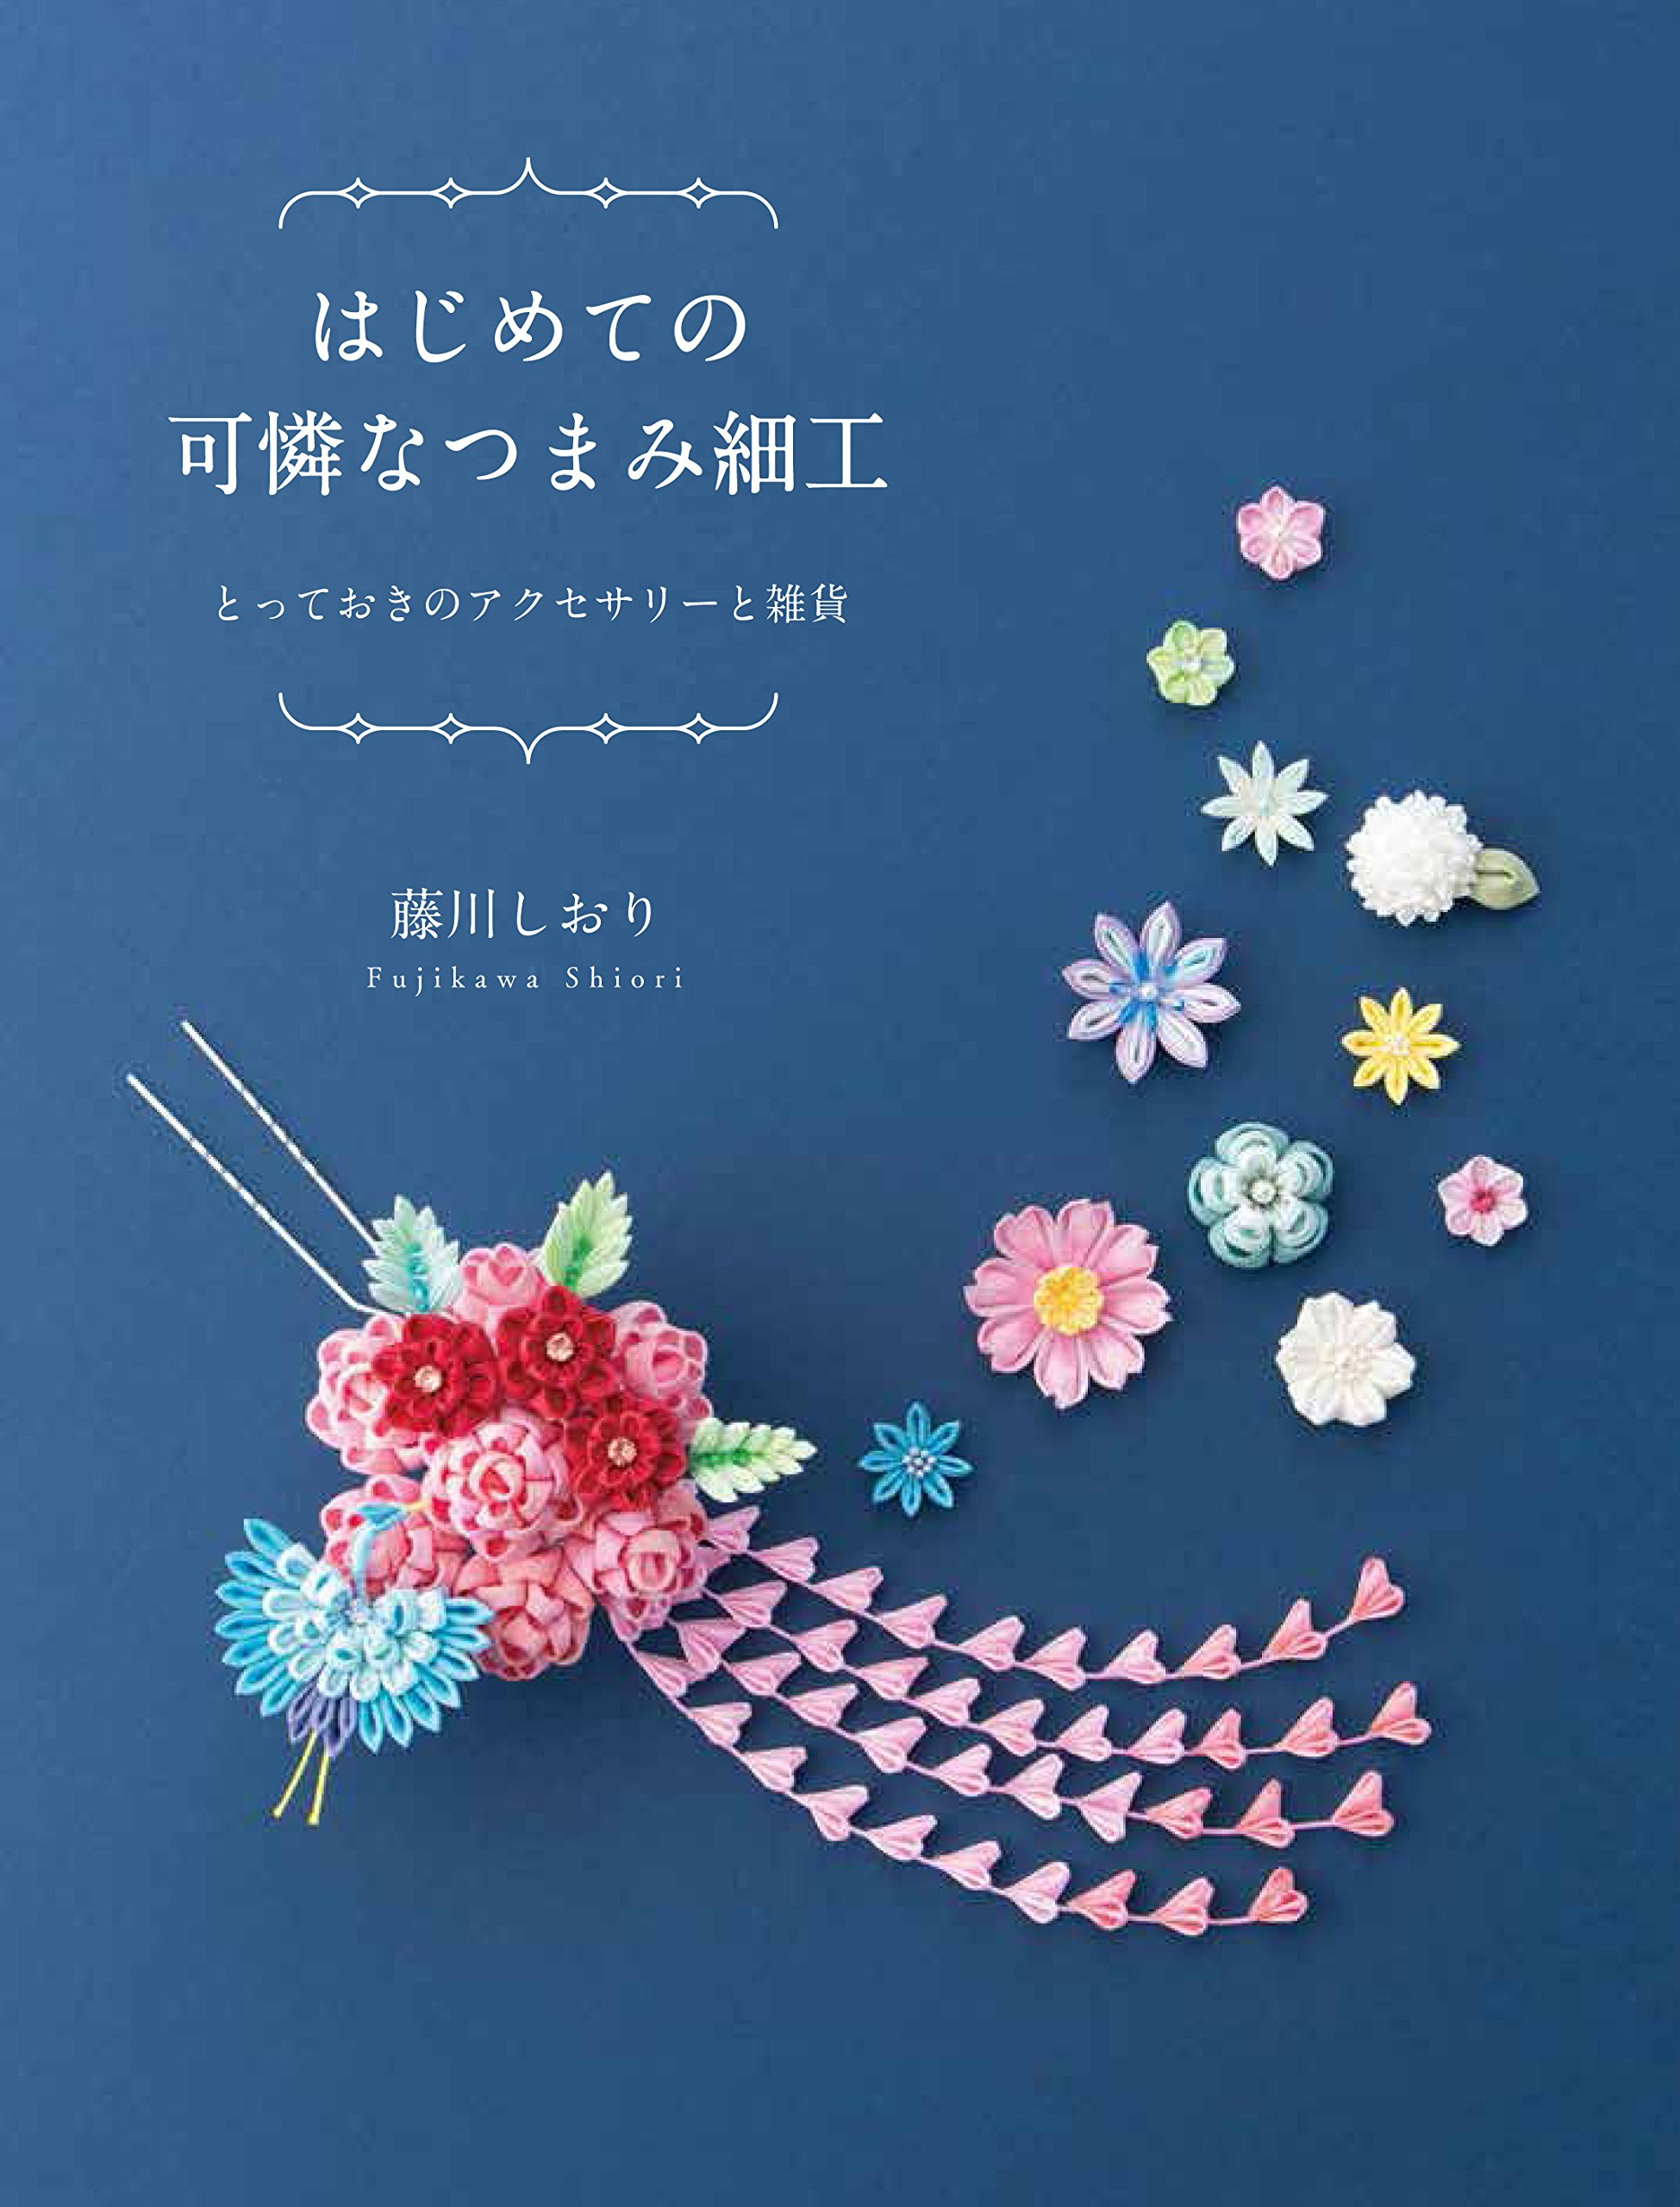 The first time the pretty kanzashi